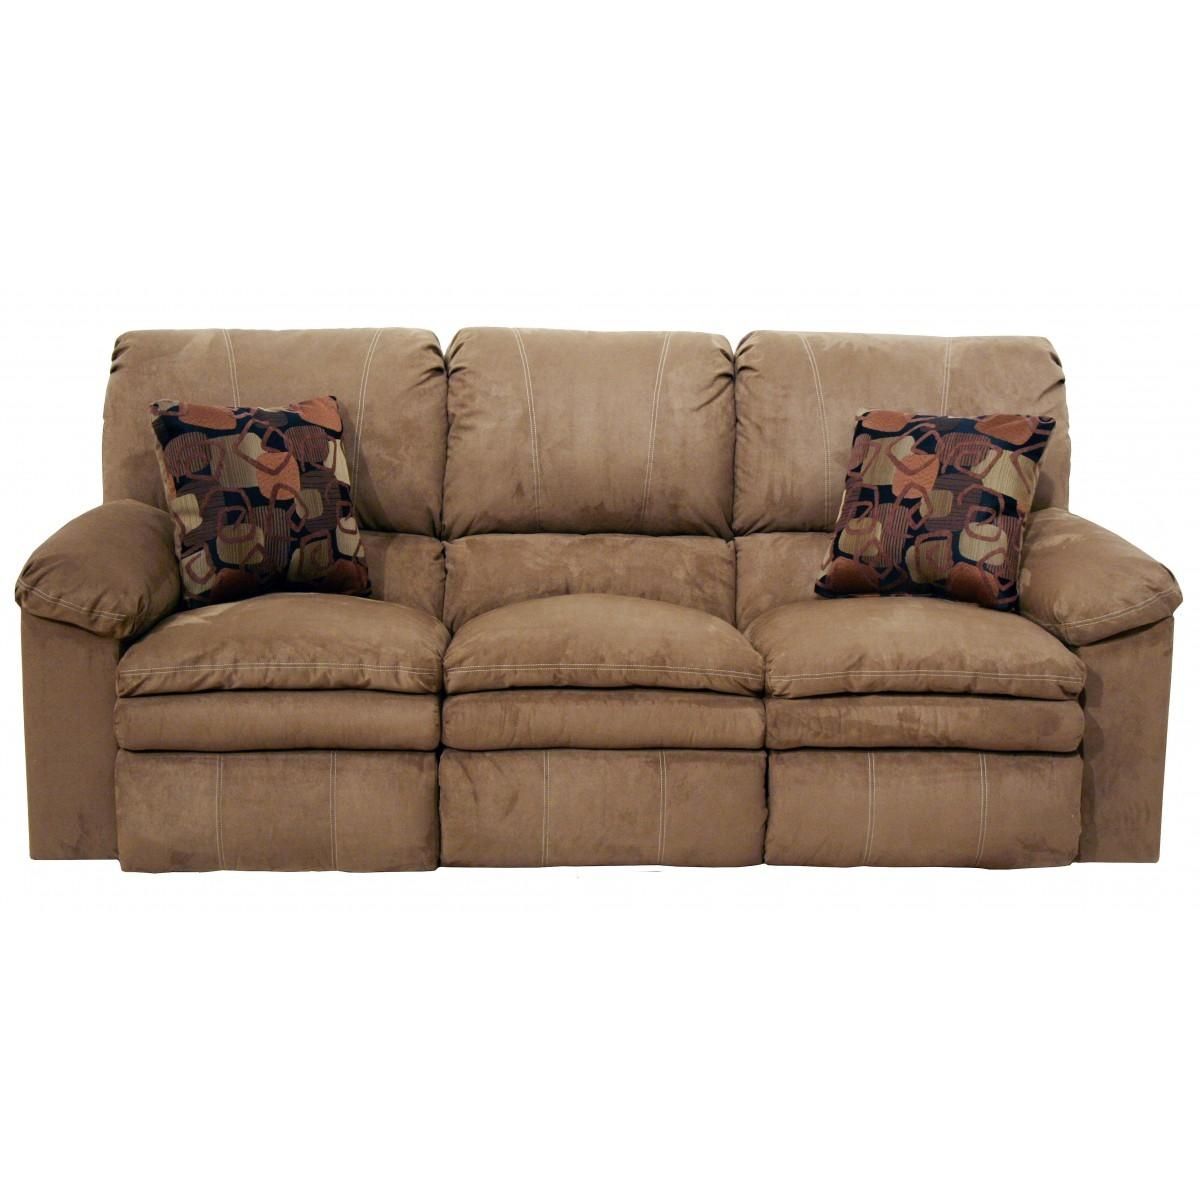 catnapper sofa la z boy leather reclining reviews 20 best collection of recliner sofas ideas